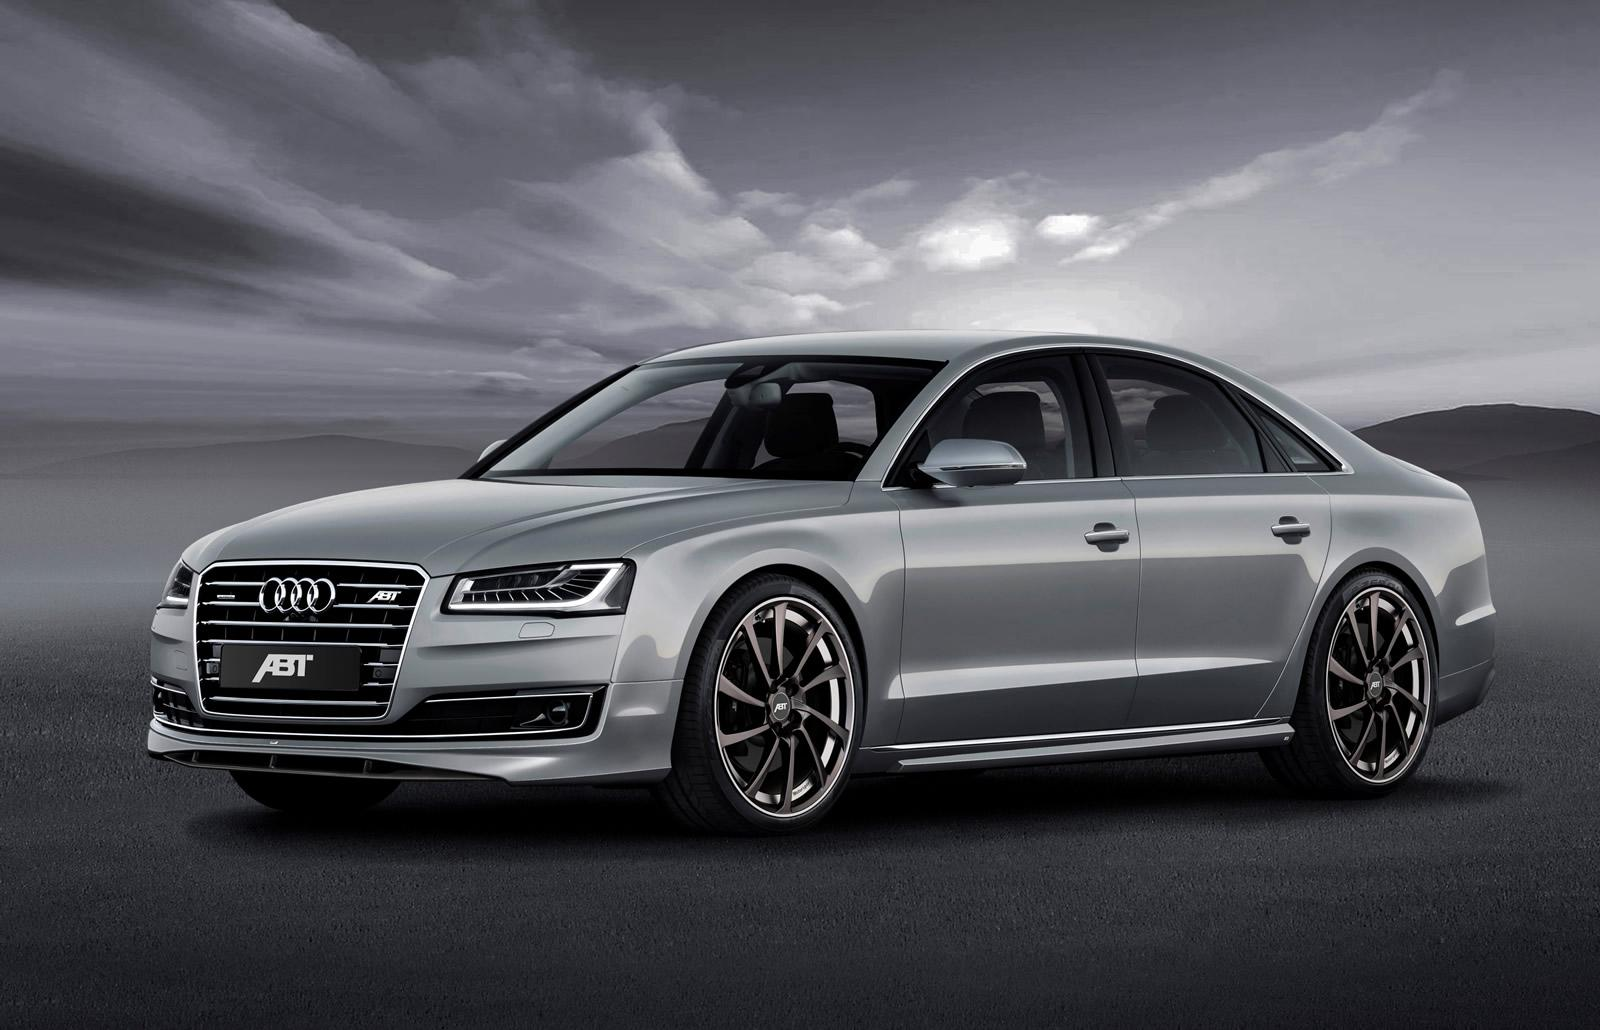 Audi A8 Facelift Tuned to 540 HP by ABT Sportsline - autoevolution